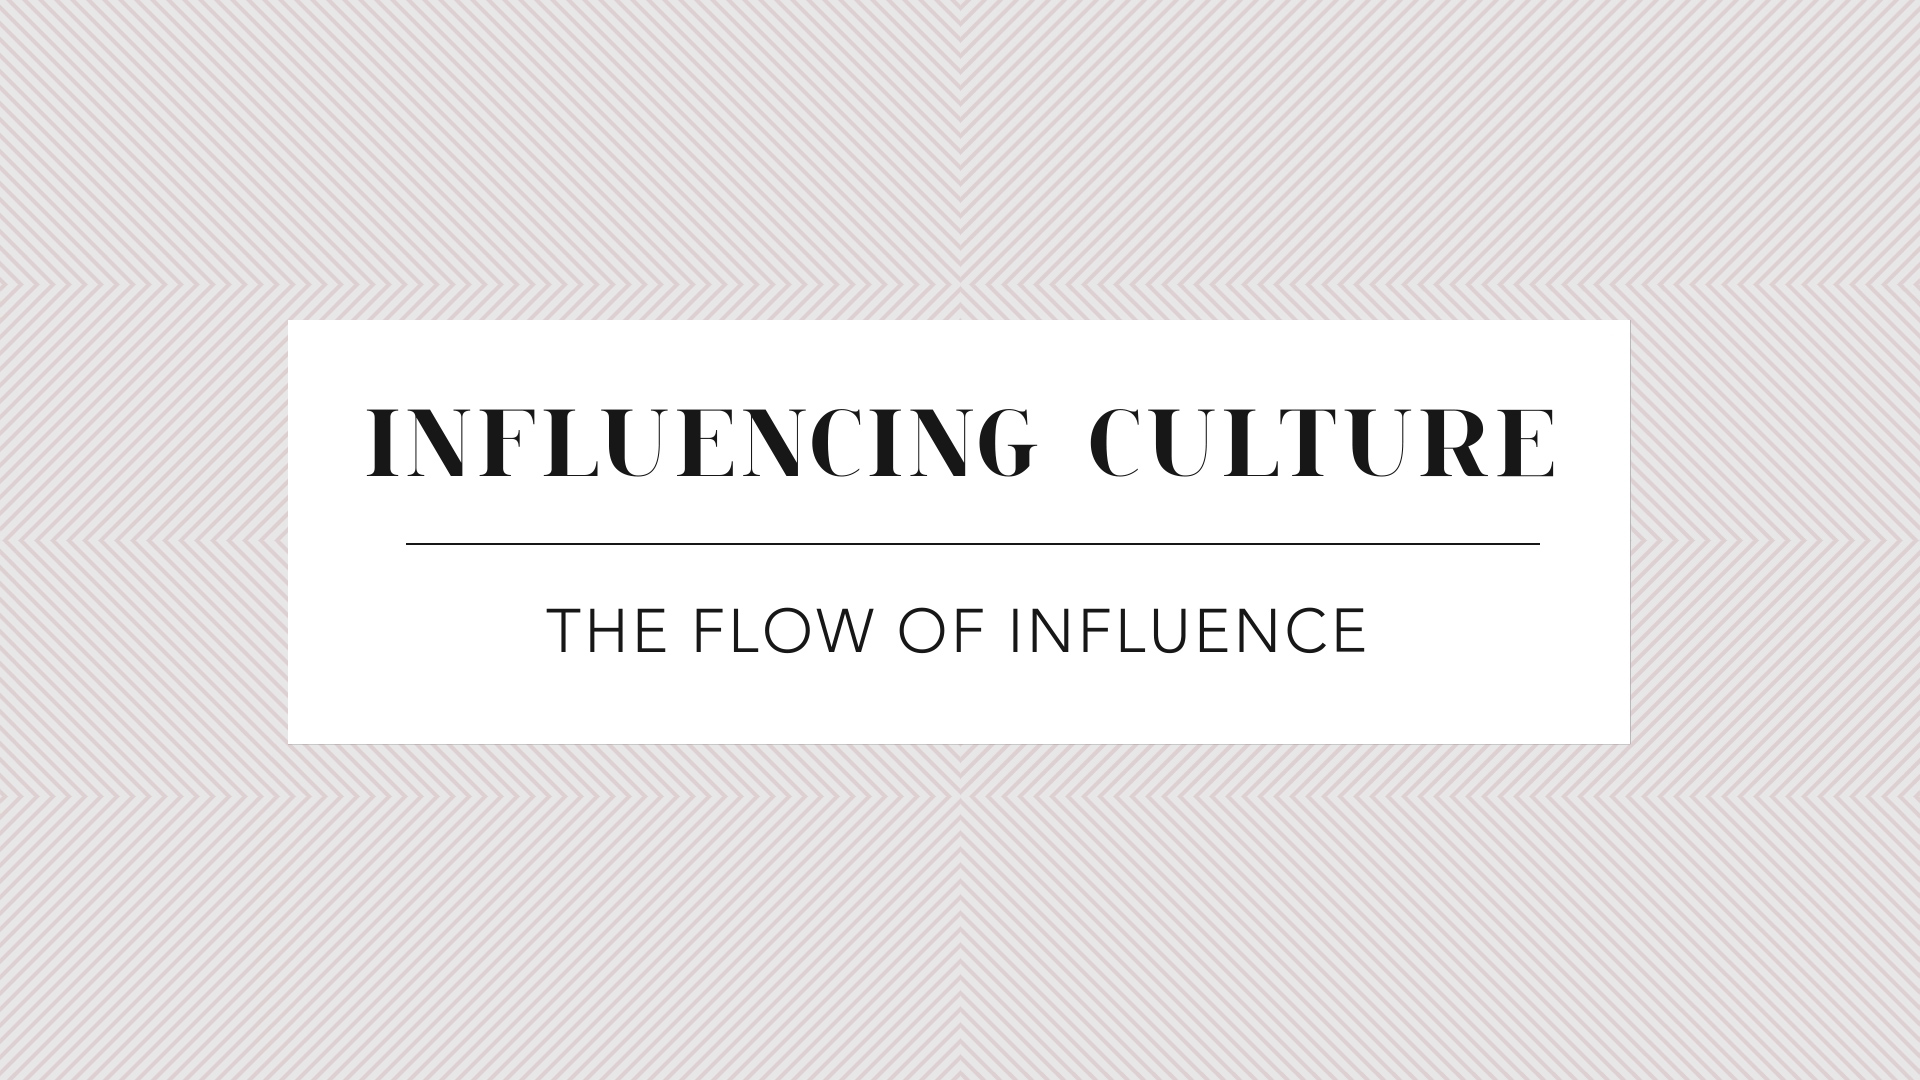 The Flow of Influence